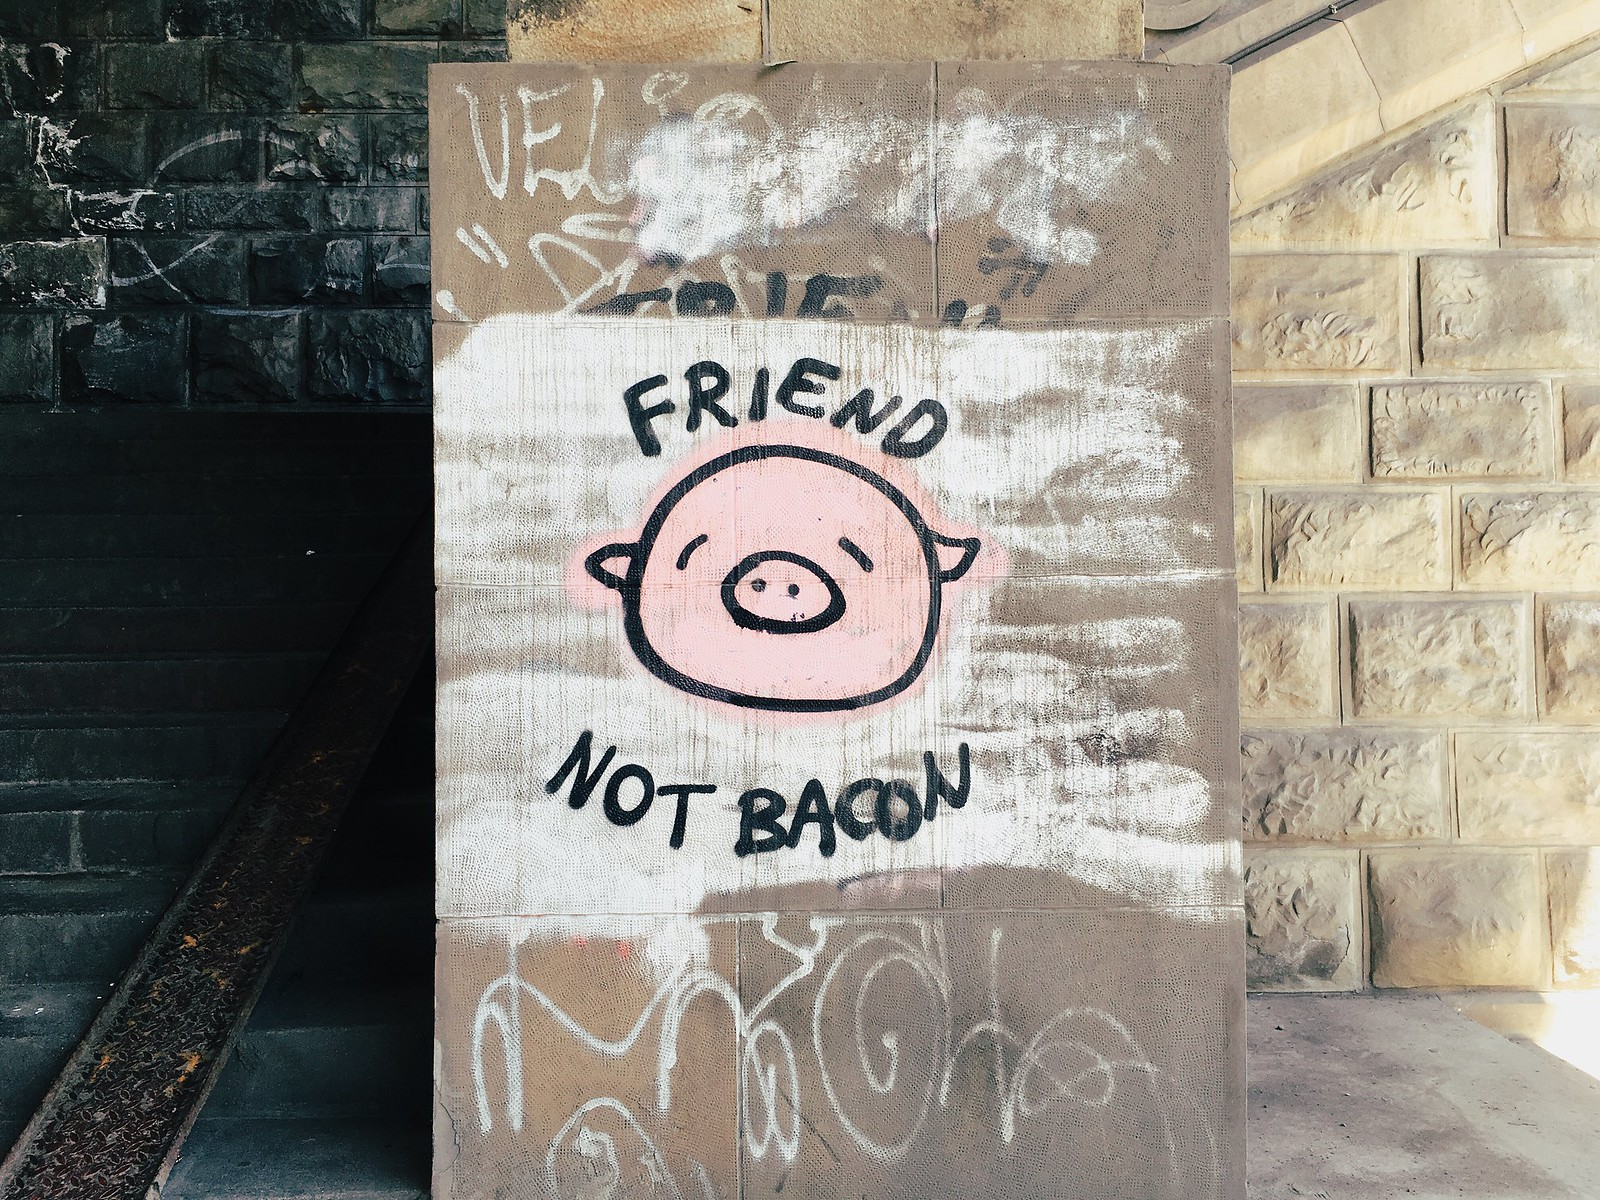 FRIEND, NOT BACON